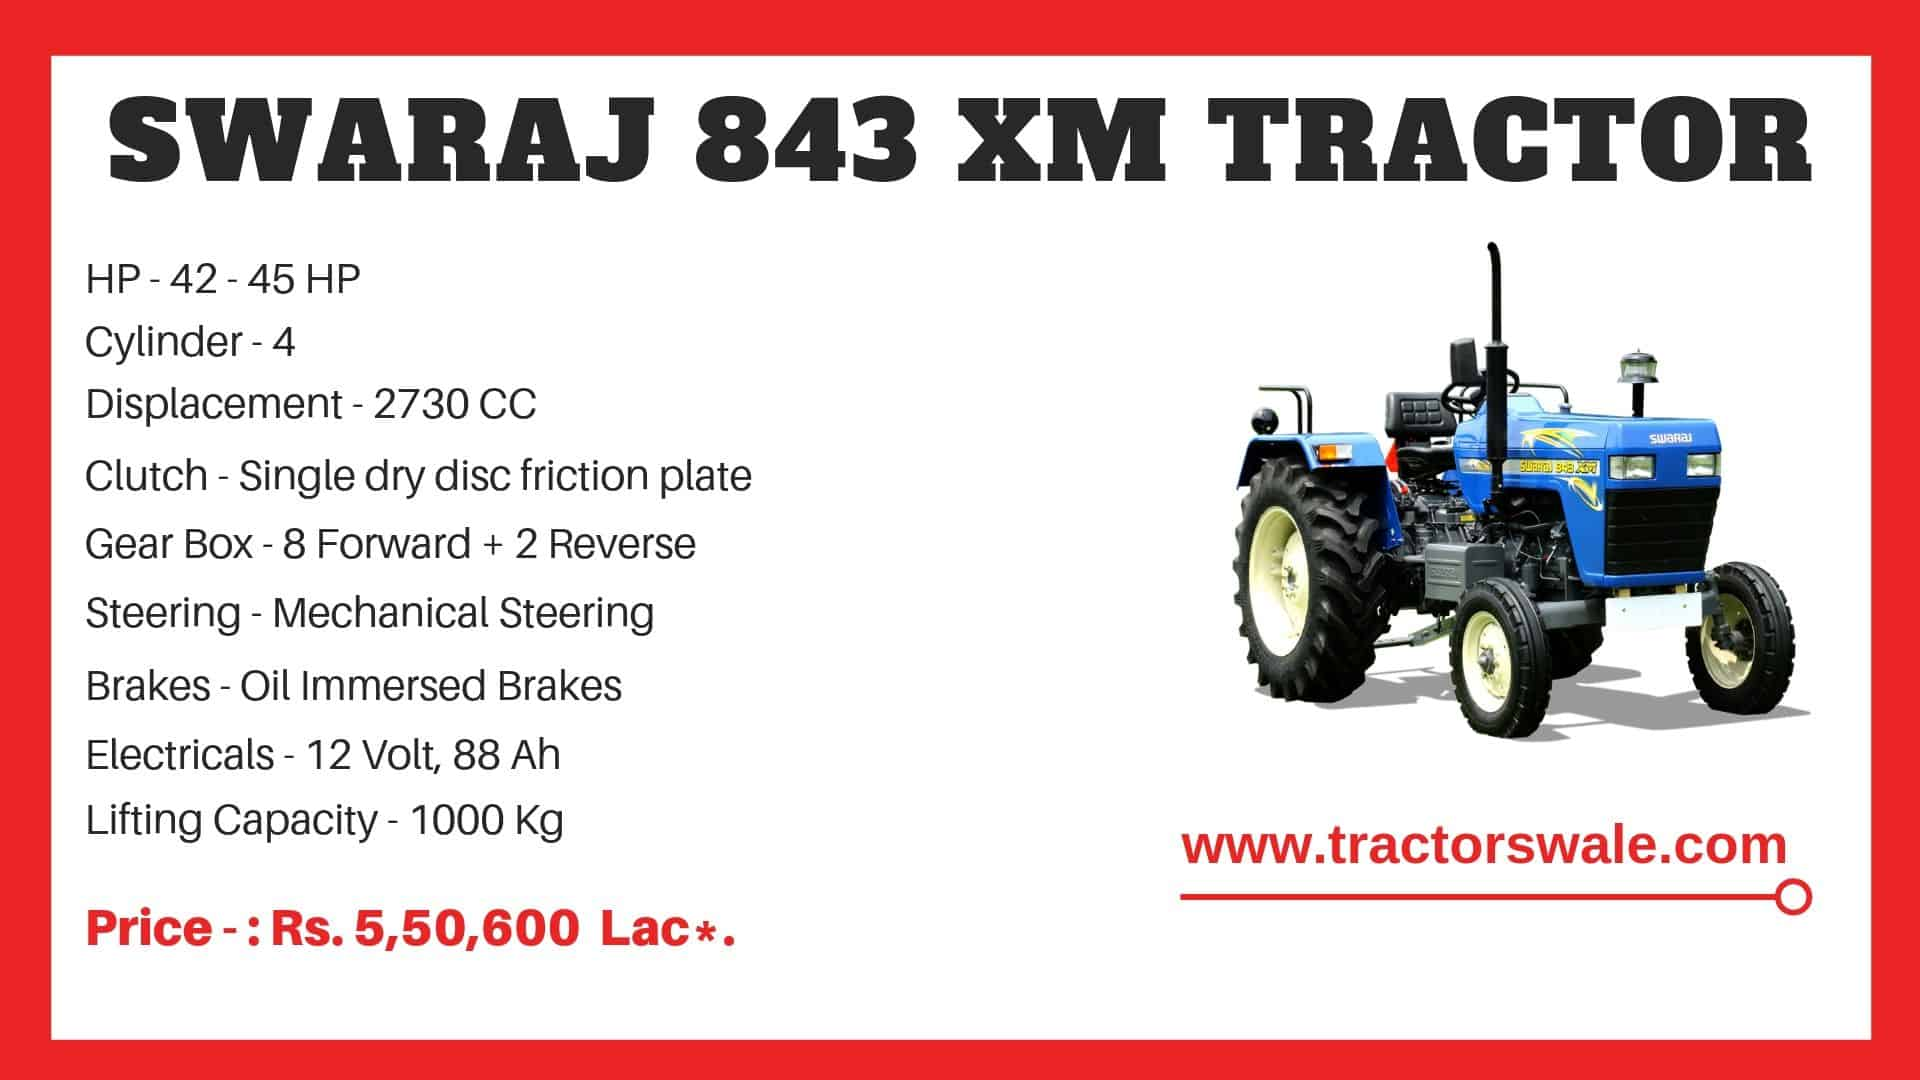 Specification of Swaraj 843 XM Tractor